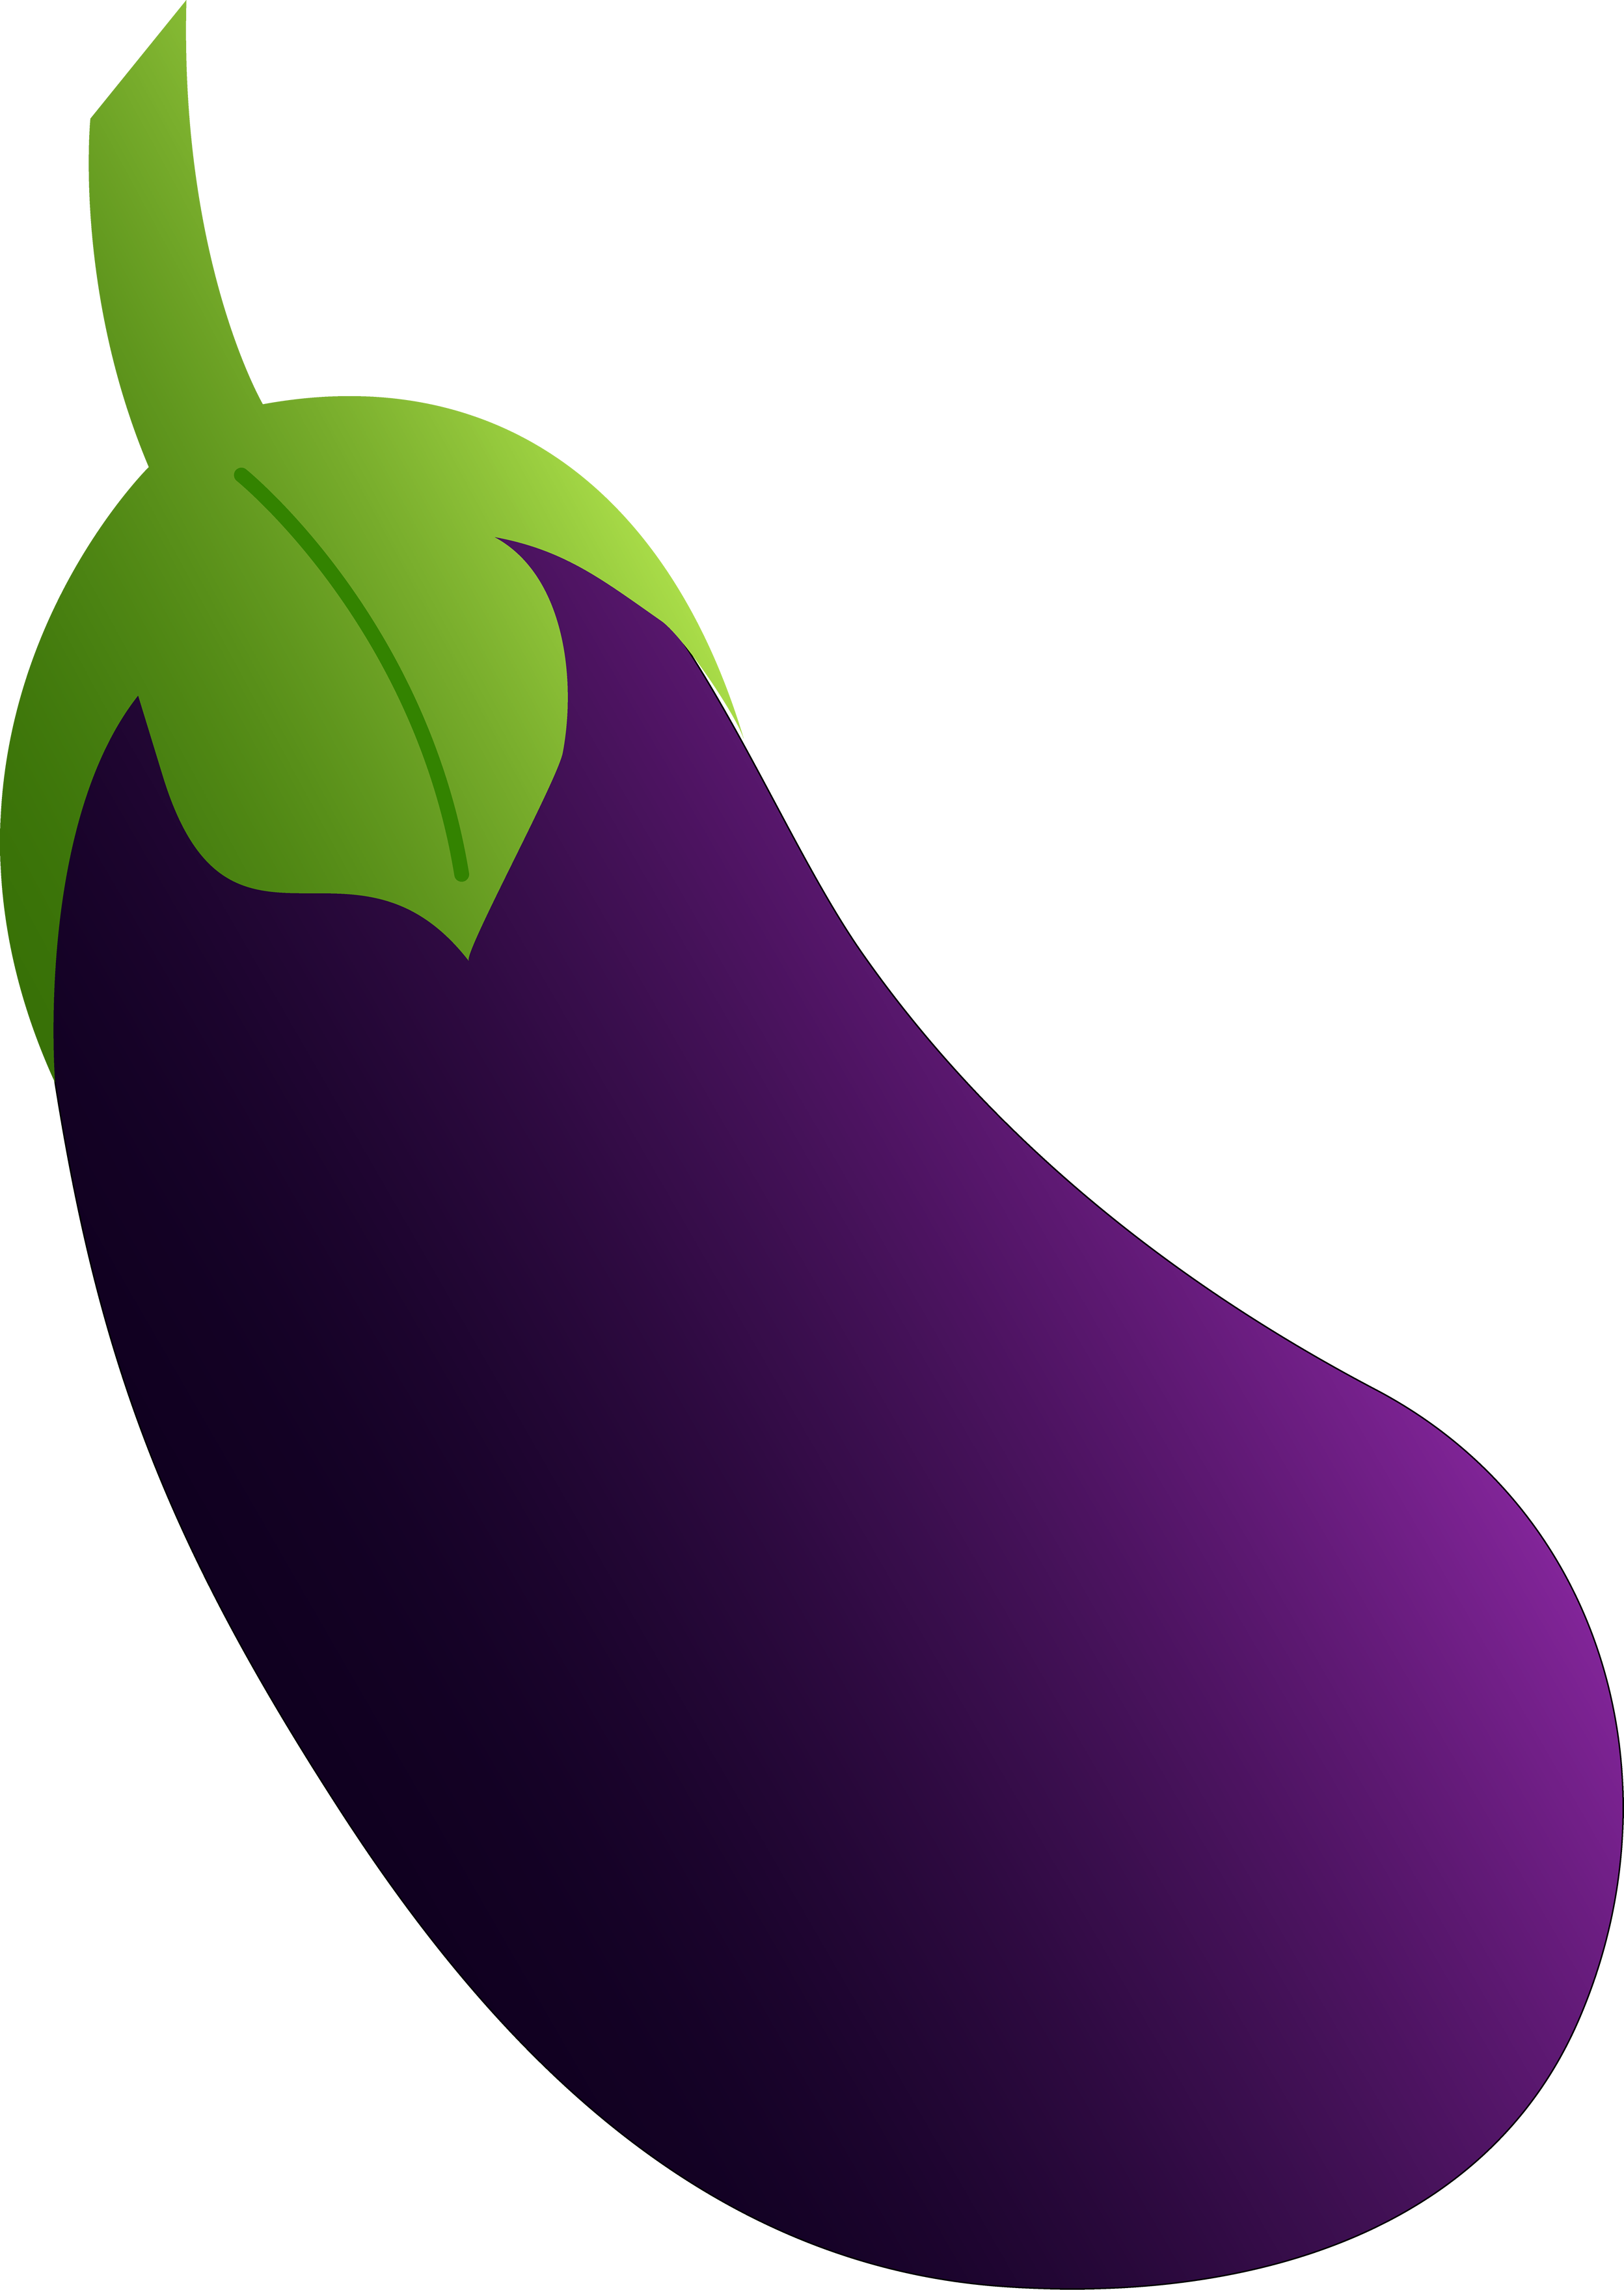 Eggplant png images free. Vegetables clipart vector